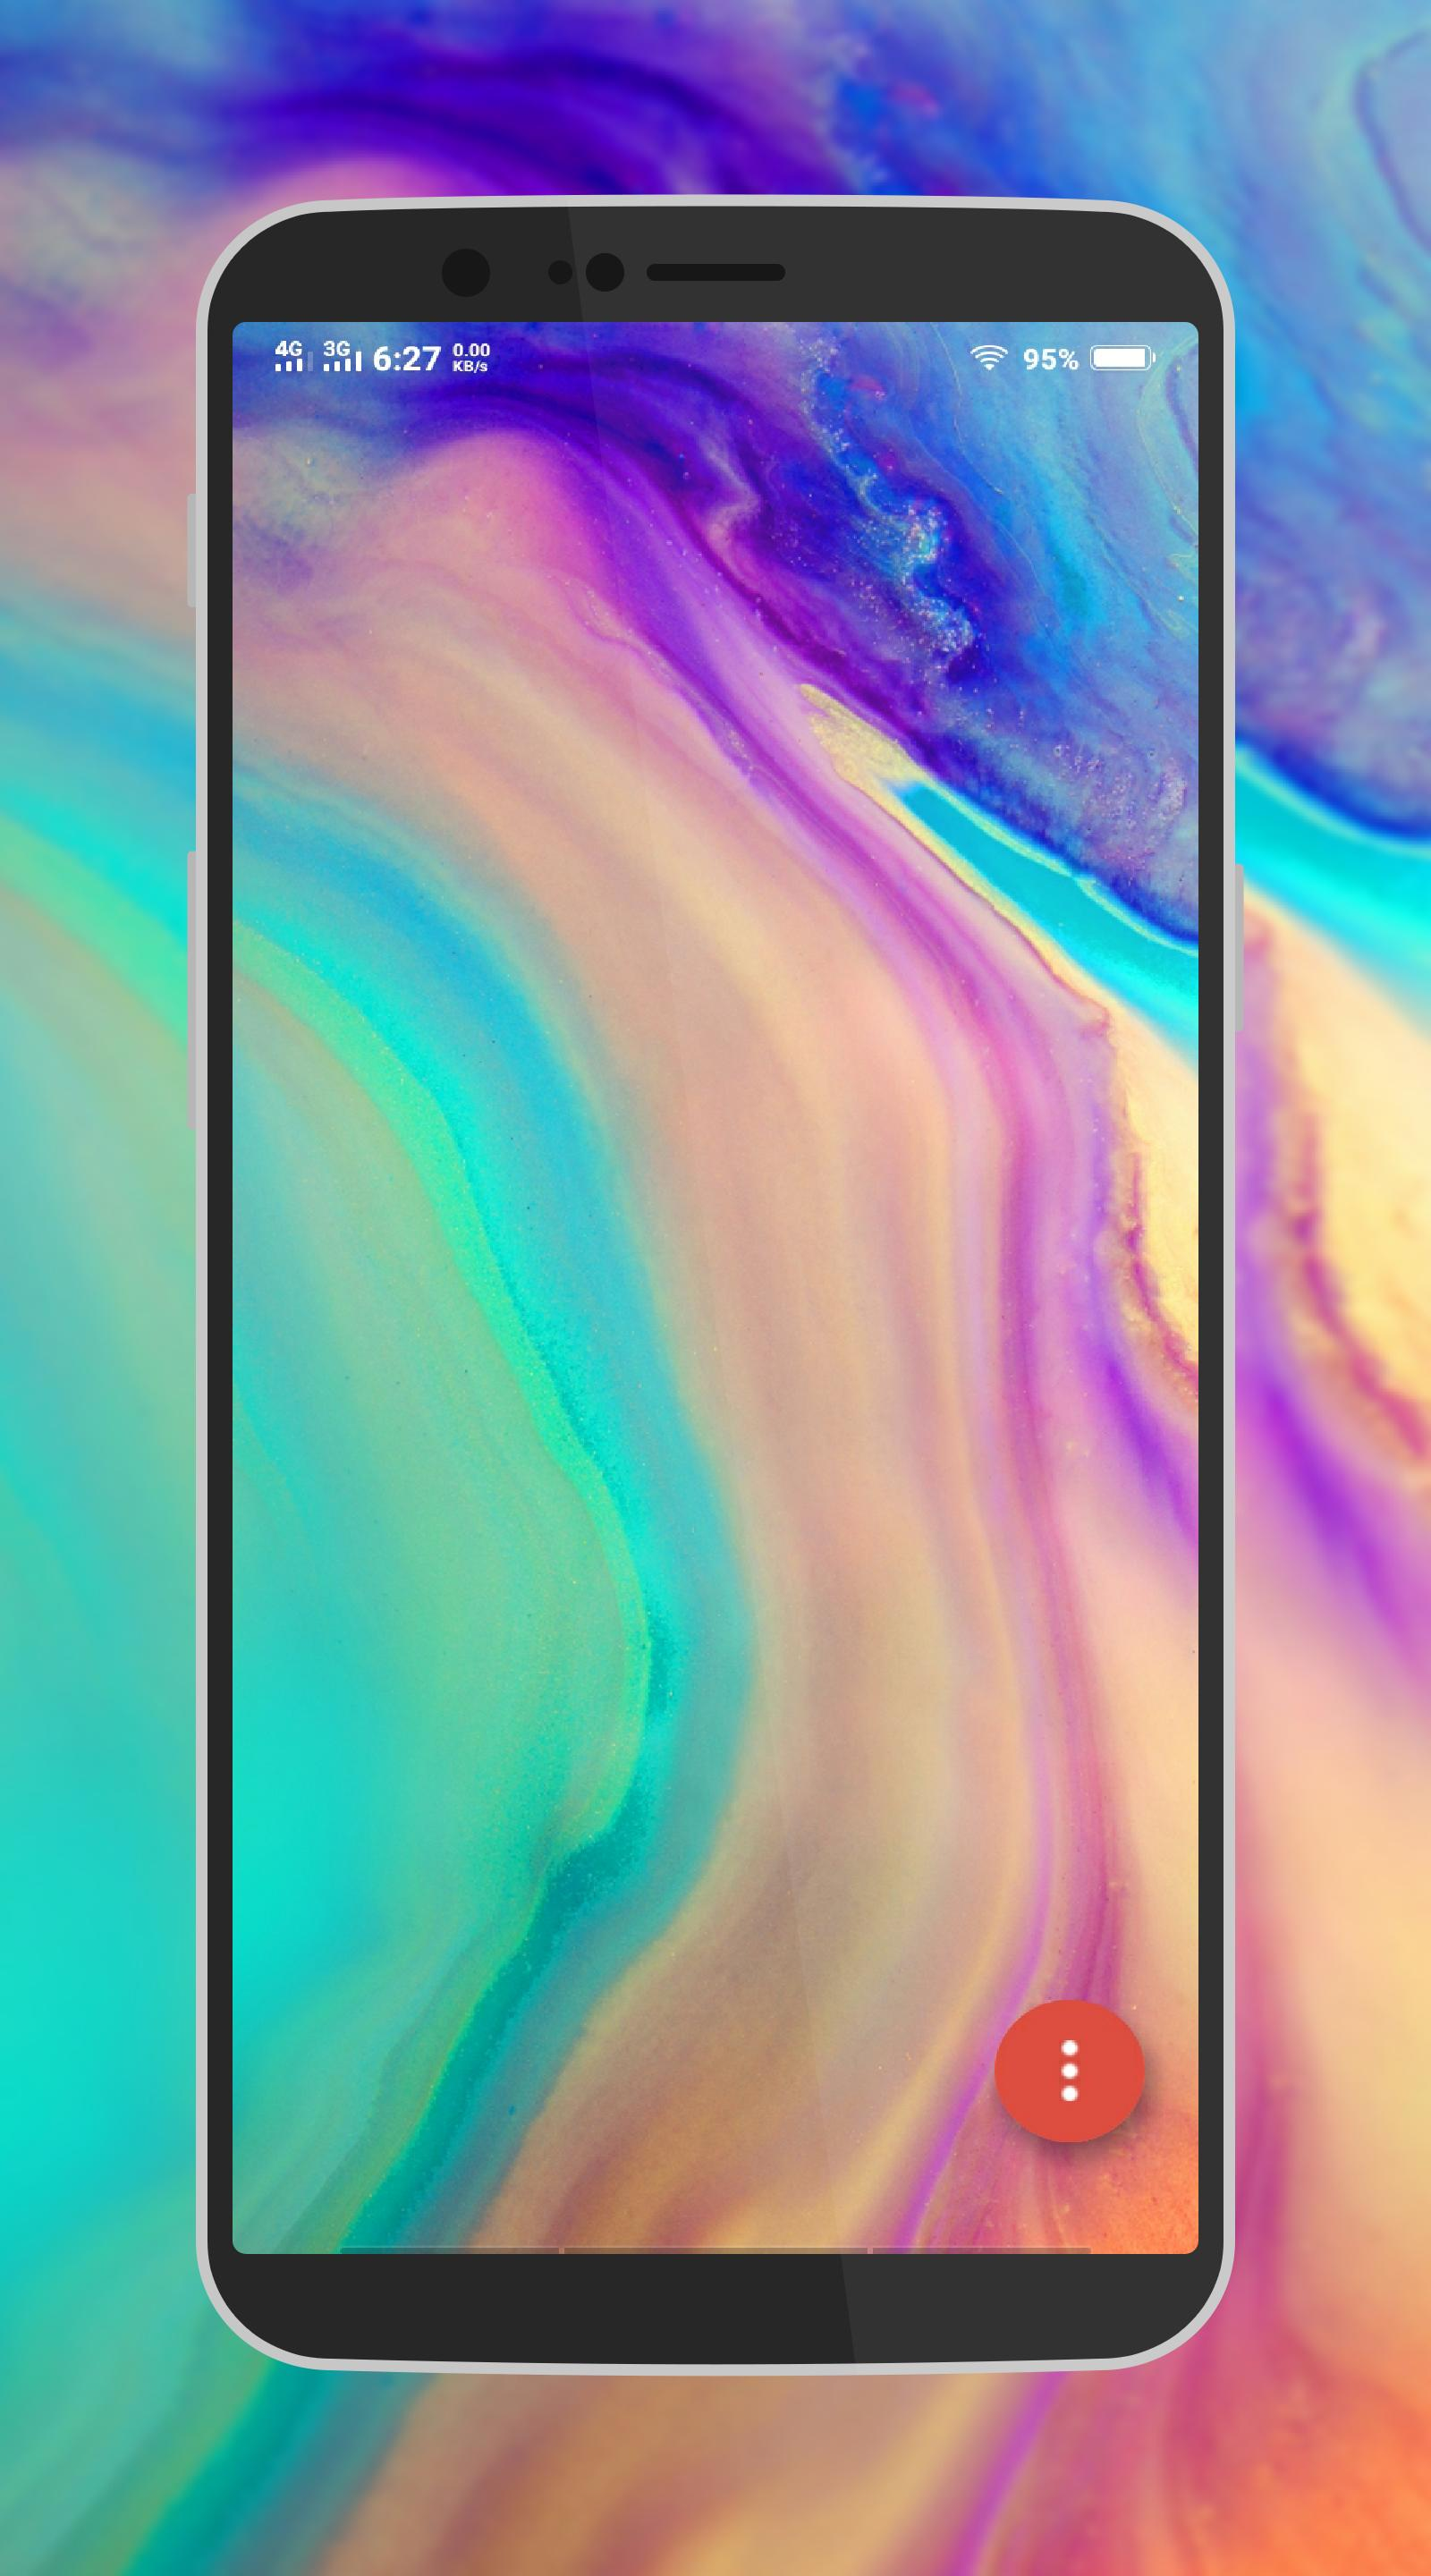 Huawei P20 Pro Wallpapers for Android - APK Download